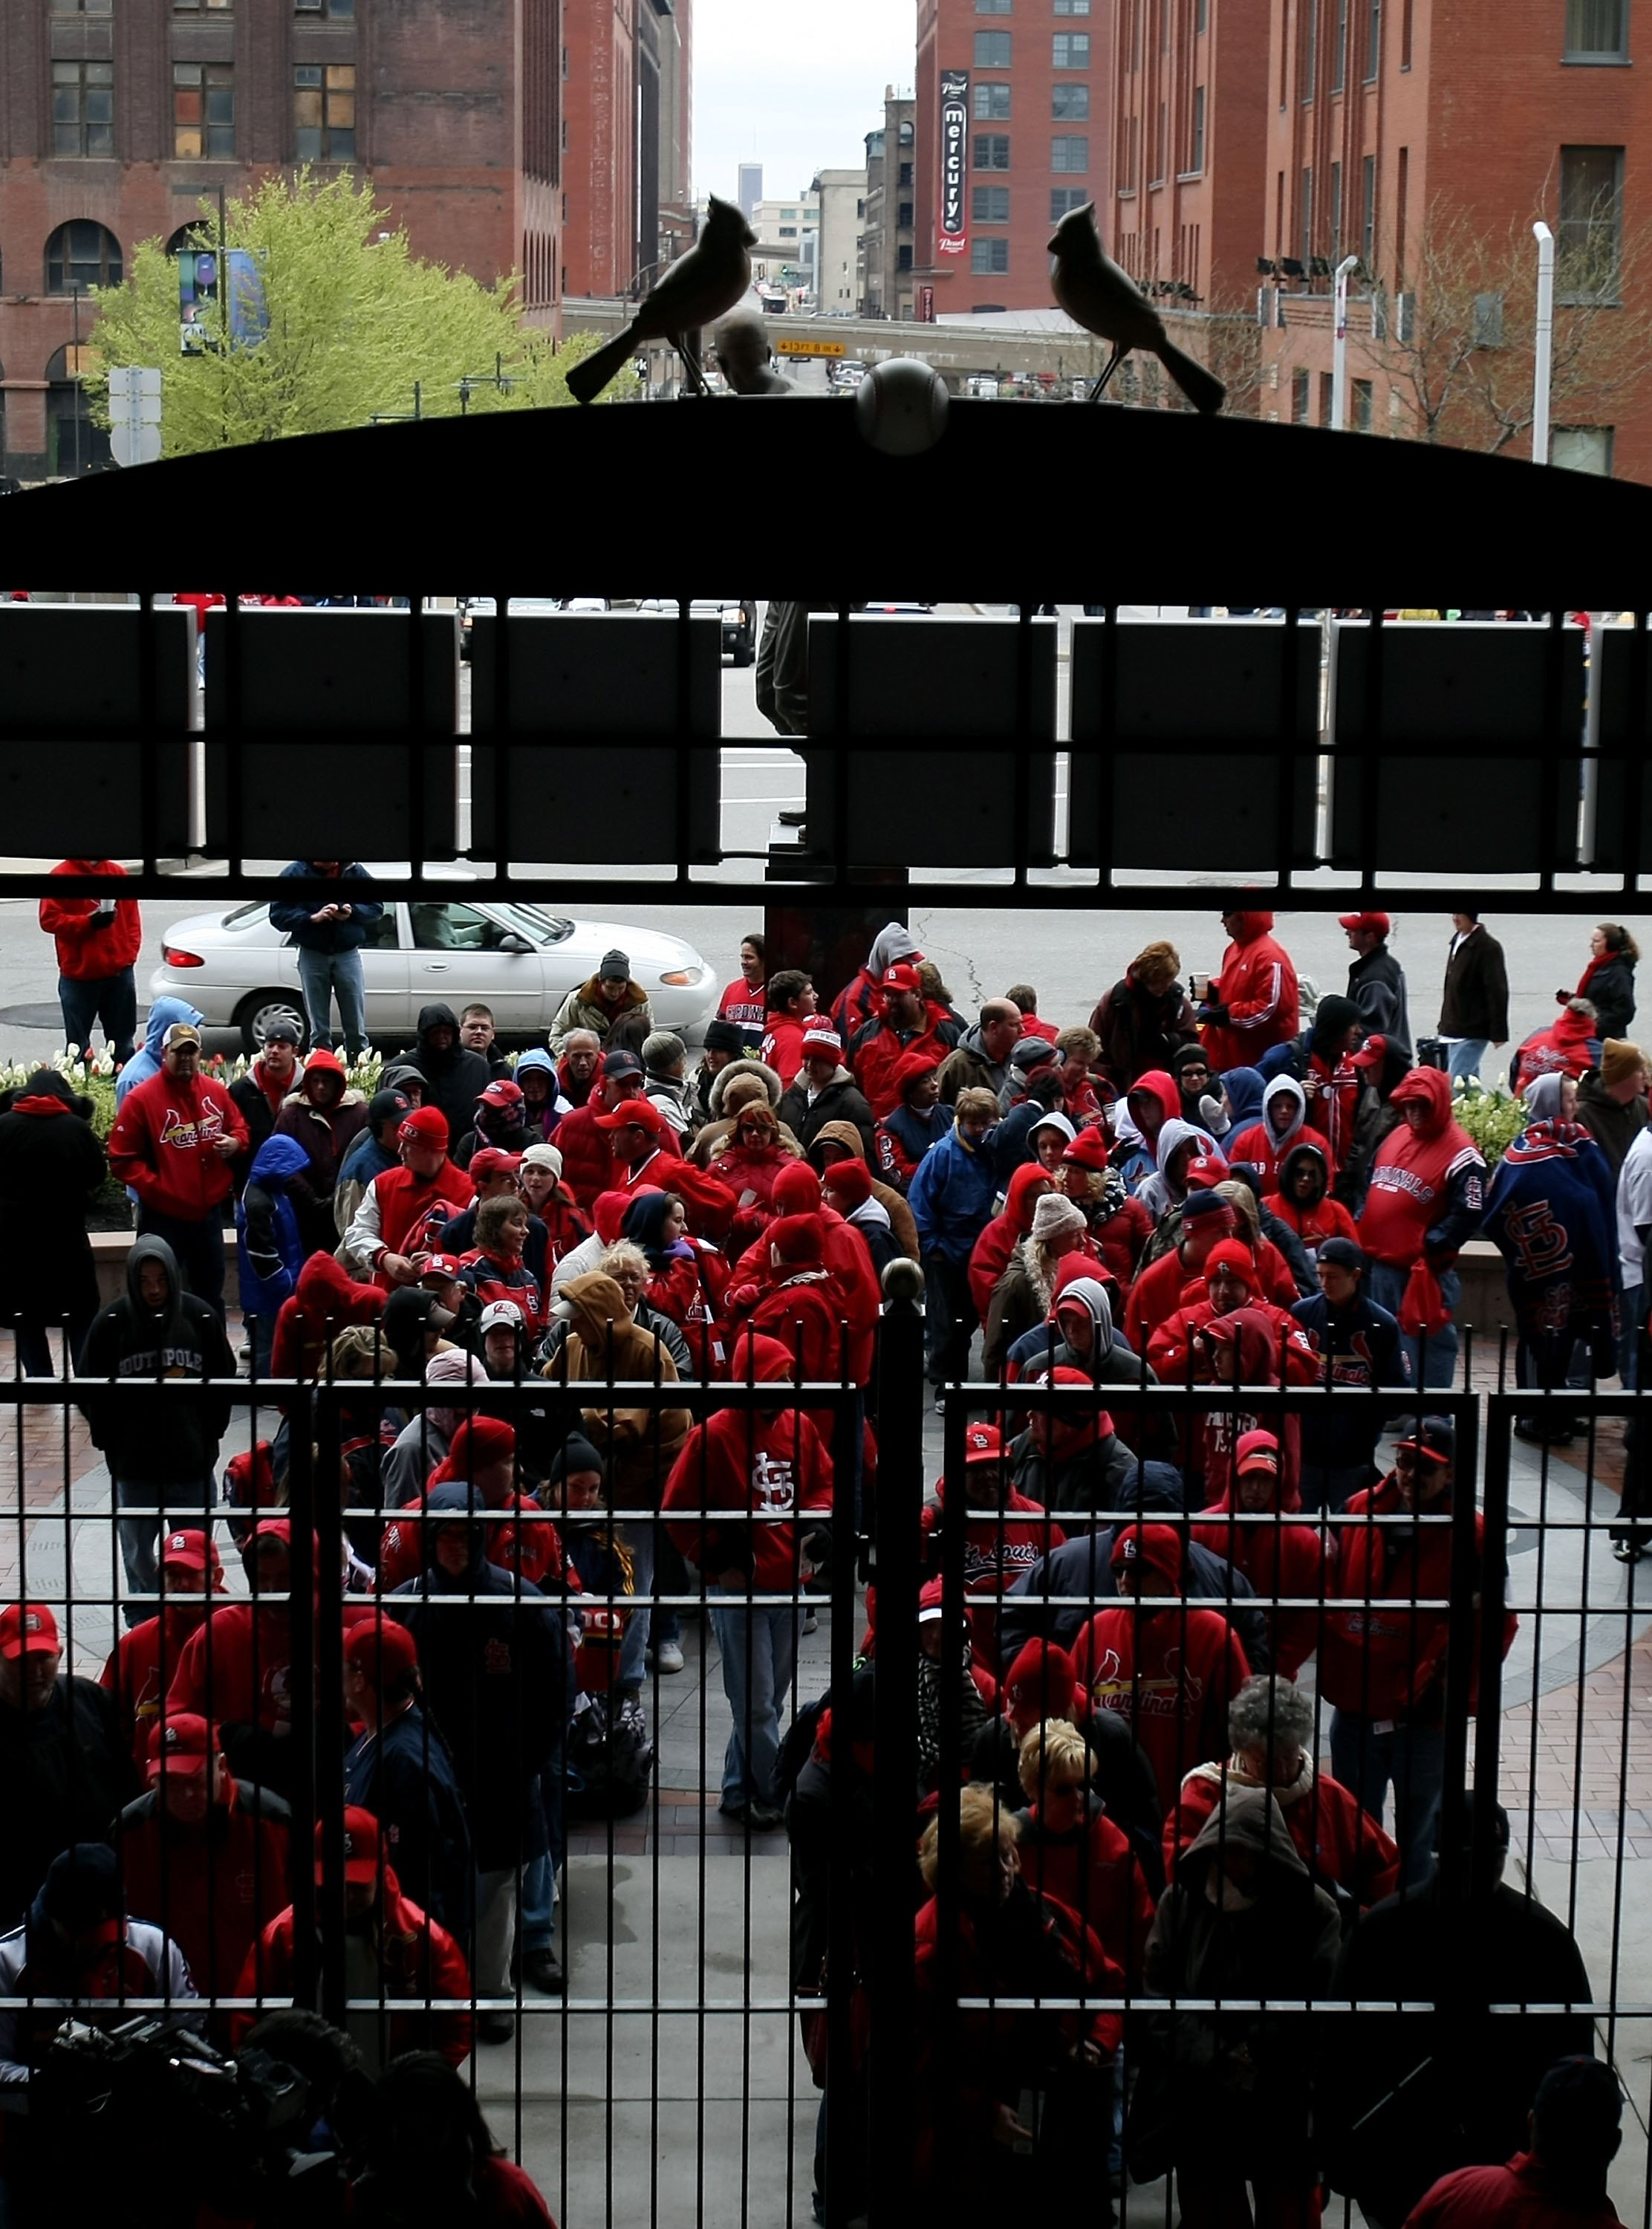 ST. LOUIS - APRIL 06:  Fans line outside the third base gate before the game between the St. Louis Cardinals and the Pittsburgh Pirates during Opening Day on April 6, 2009  at Busch Stadium in St. Louis, Missouri.  (Photo by Elsa/Getty Images)